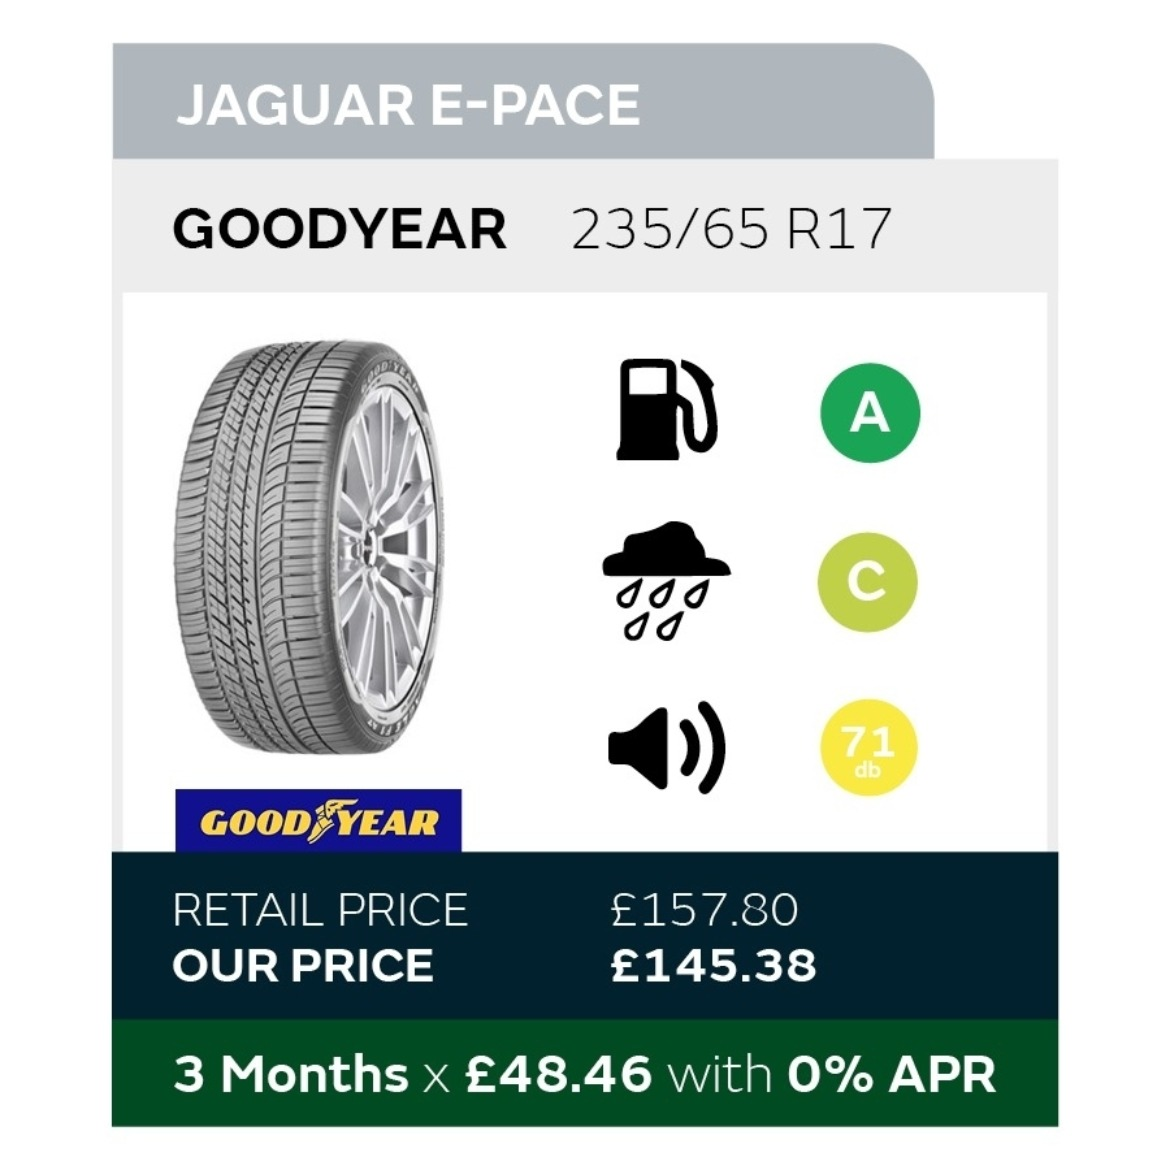 Jaguar E-Pace Tyre Offer